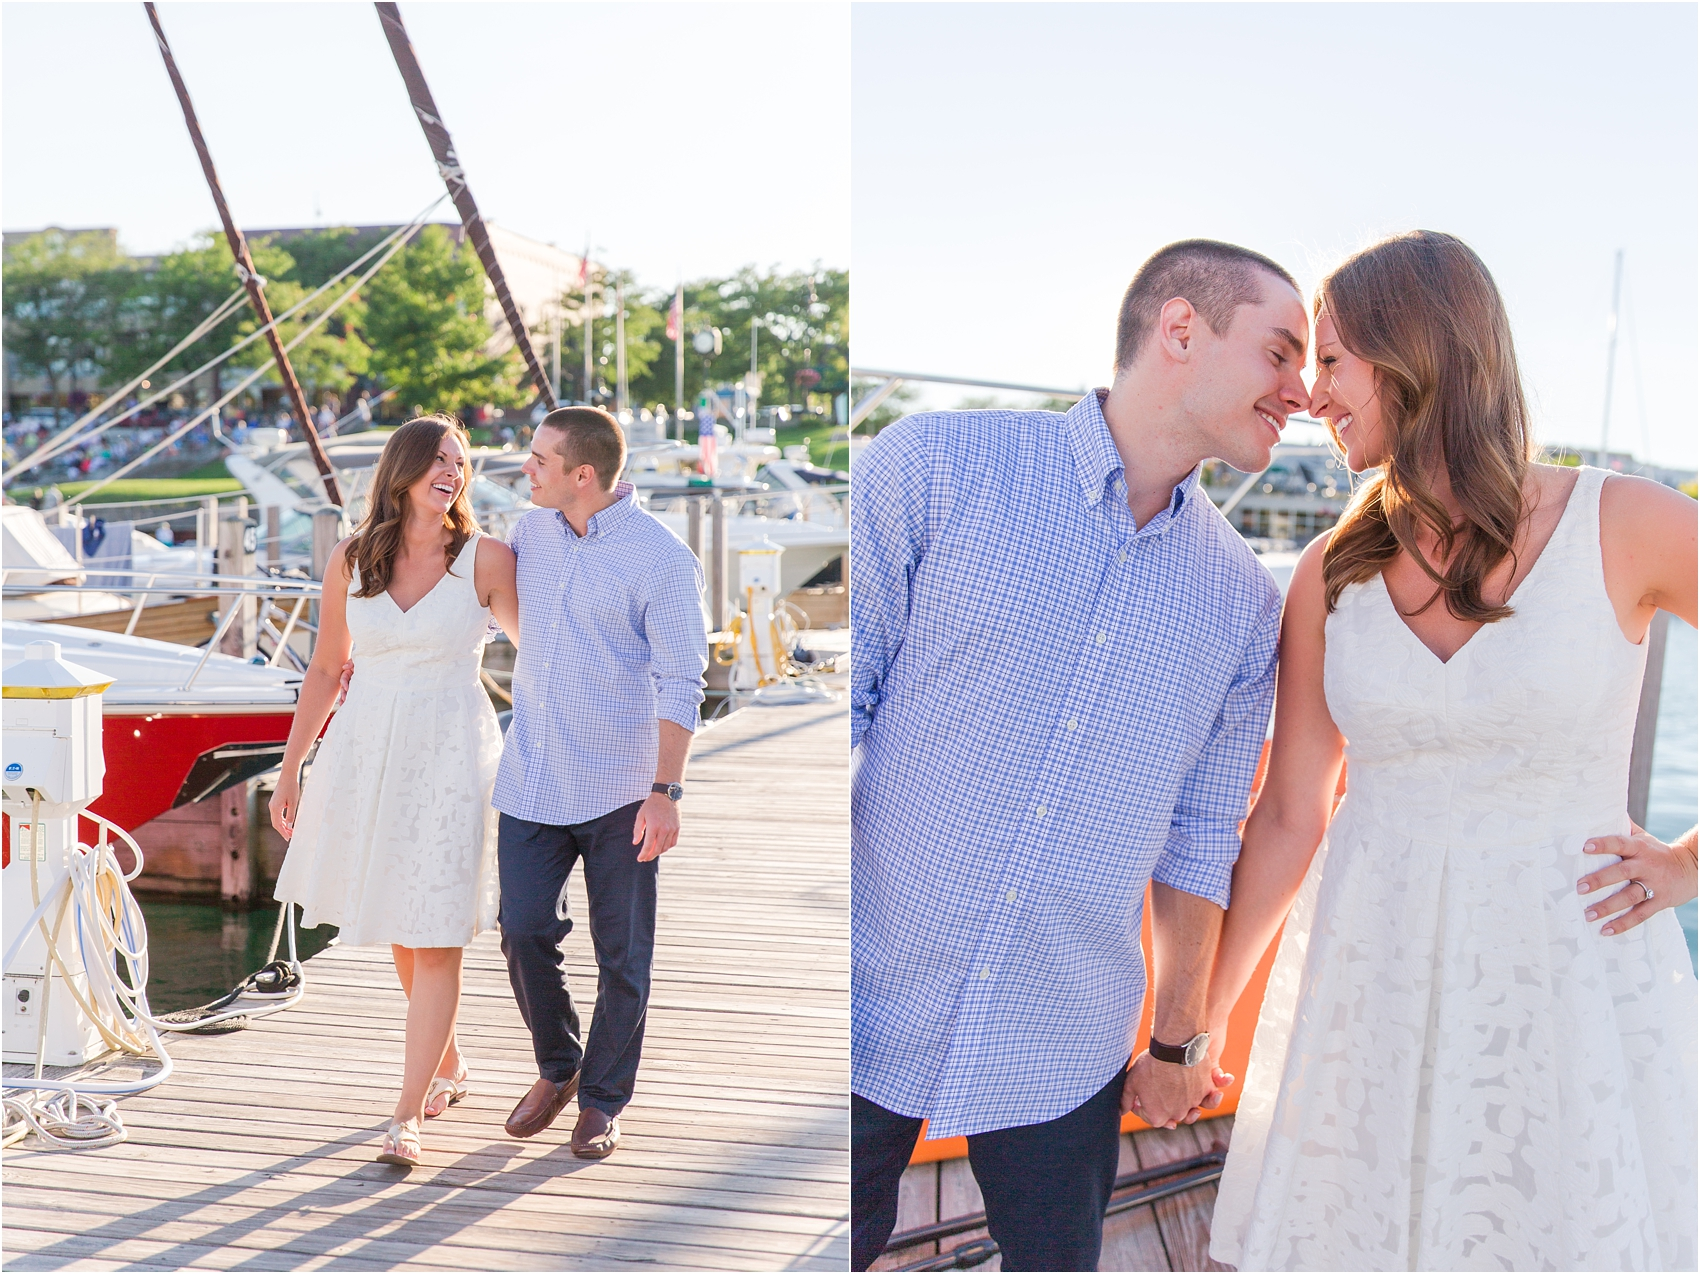 romantic-sunset-engagement-photos-in-downtown-charlevoix-mi-by-courtney-carolyn-photography_0012.jpg